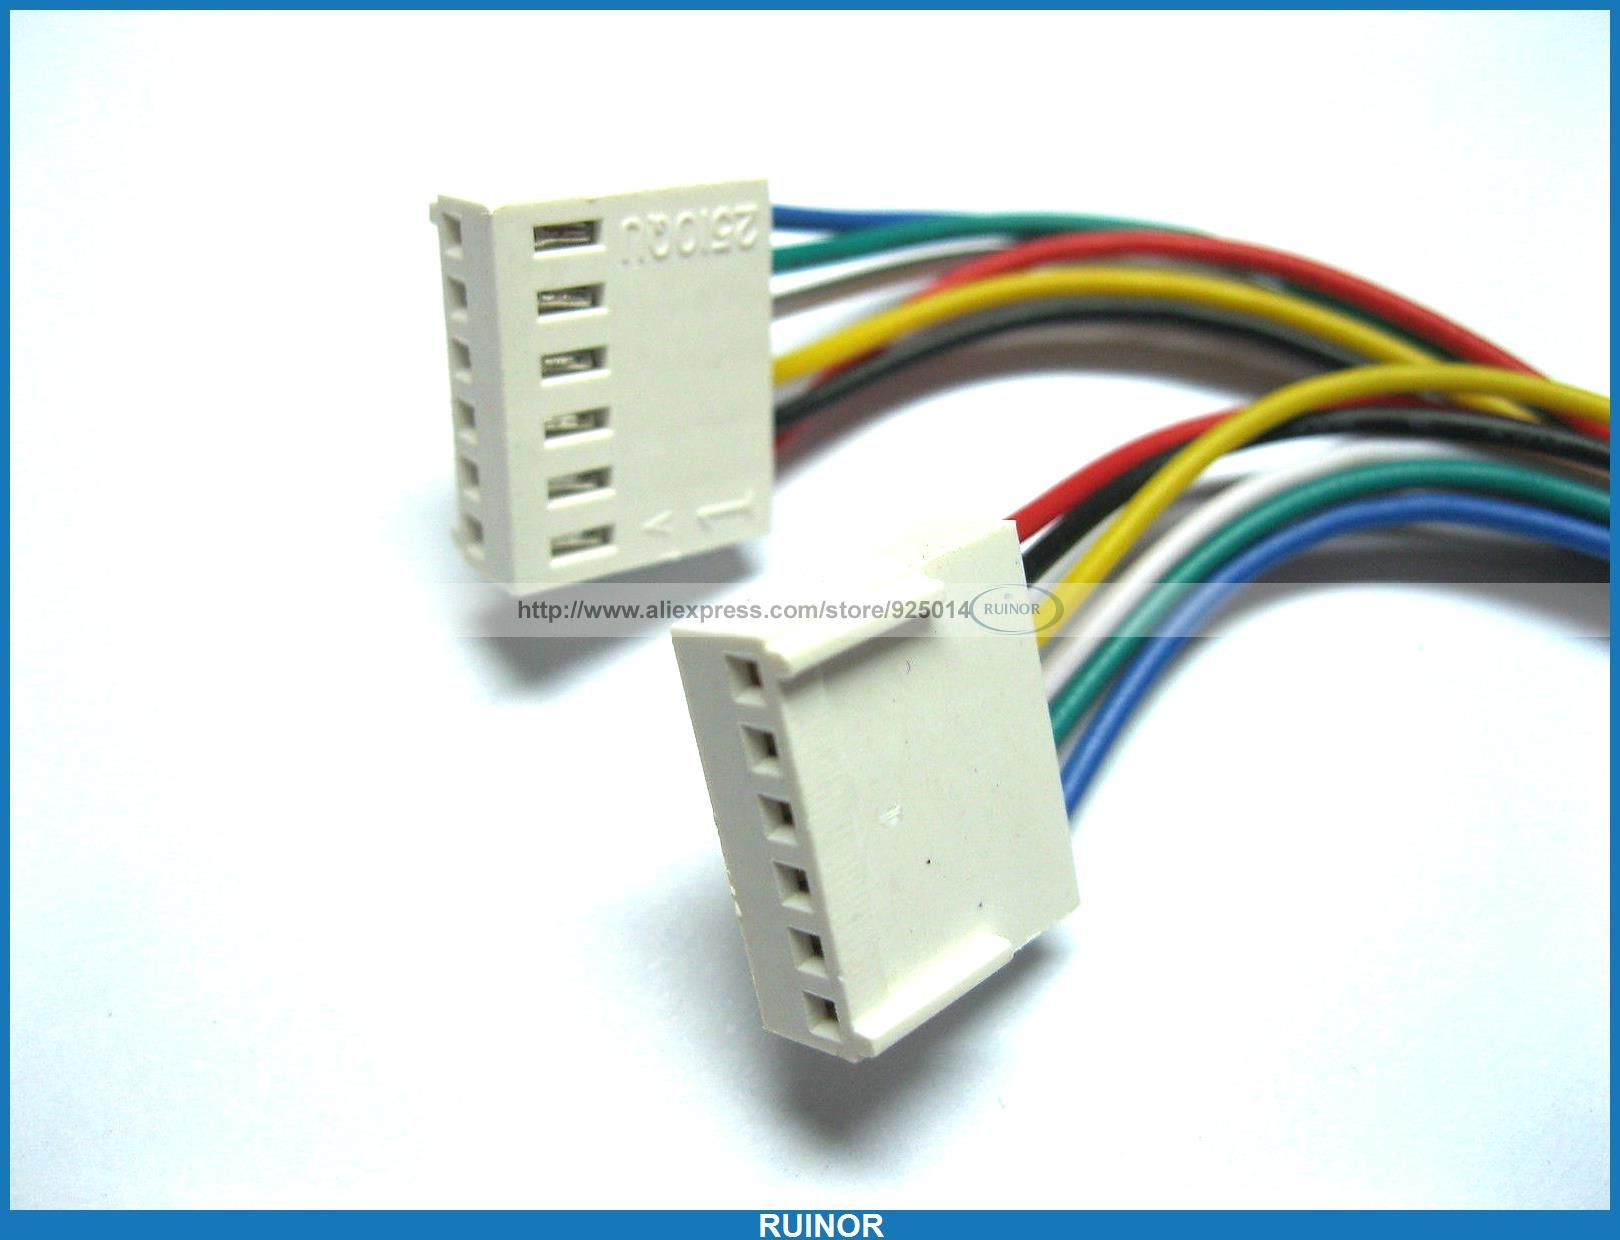 20 Pcs 2510 2.54mm Pitch 6 Pin Female Connector with 26AWG 300mm ...